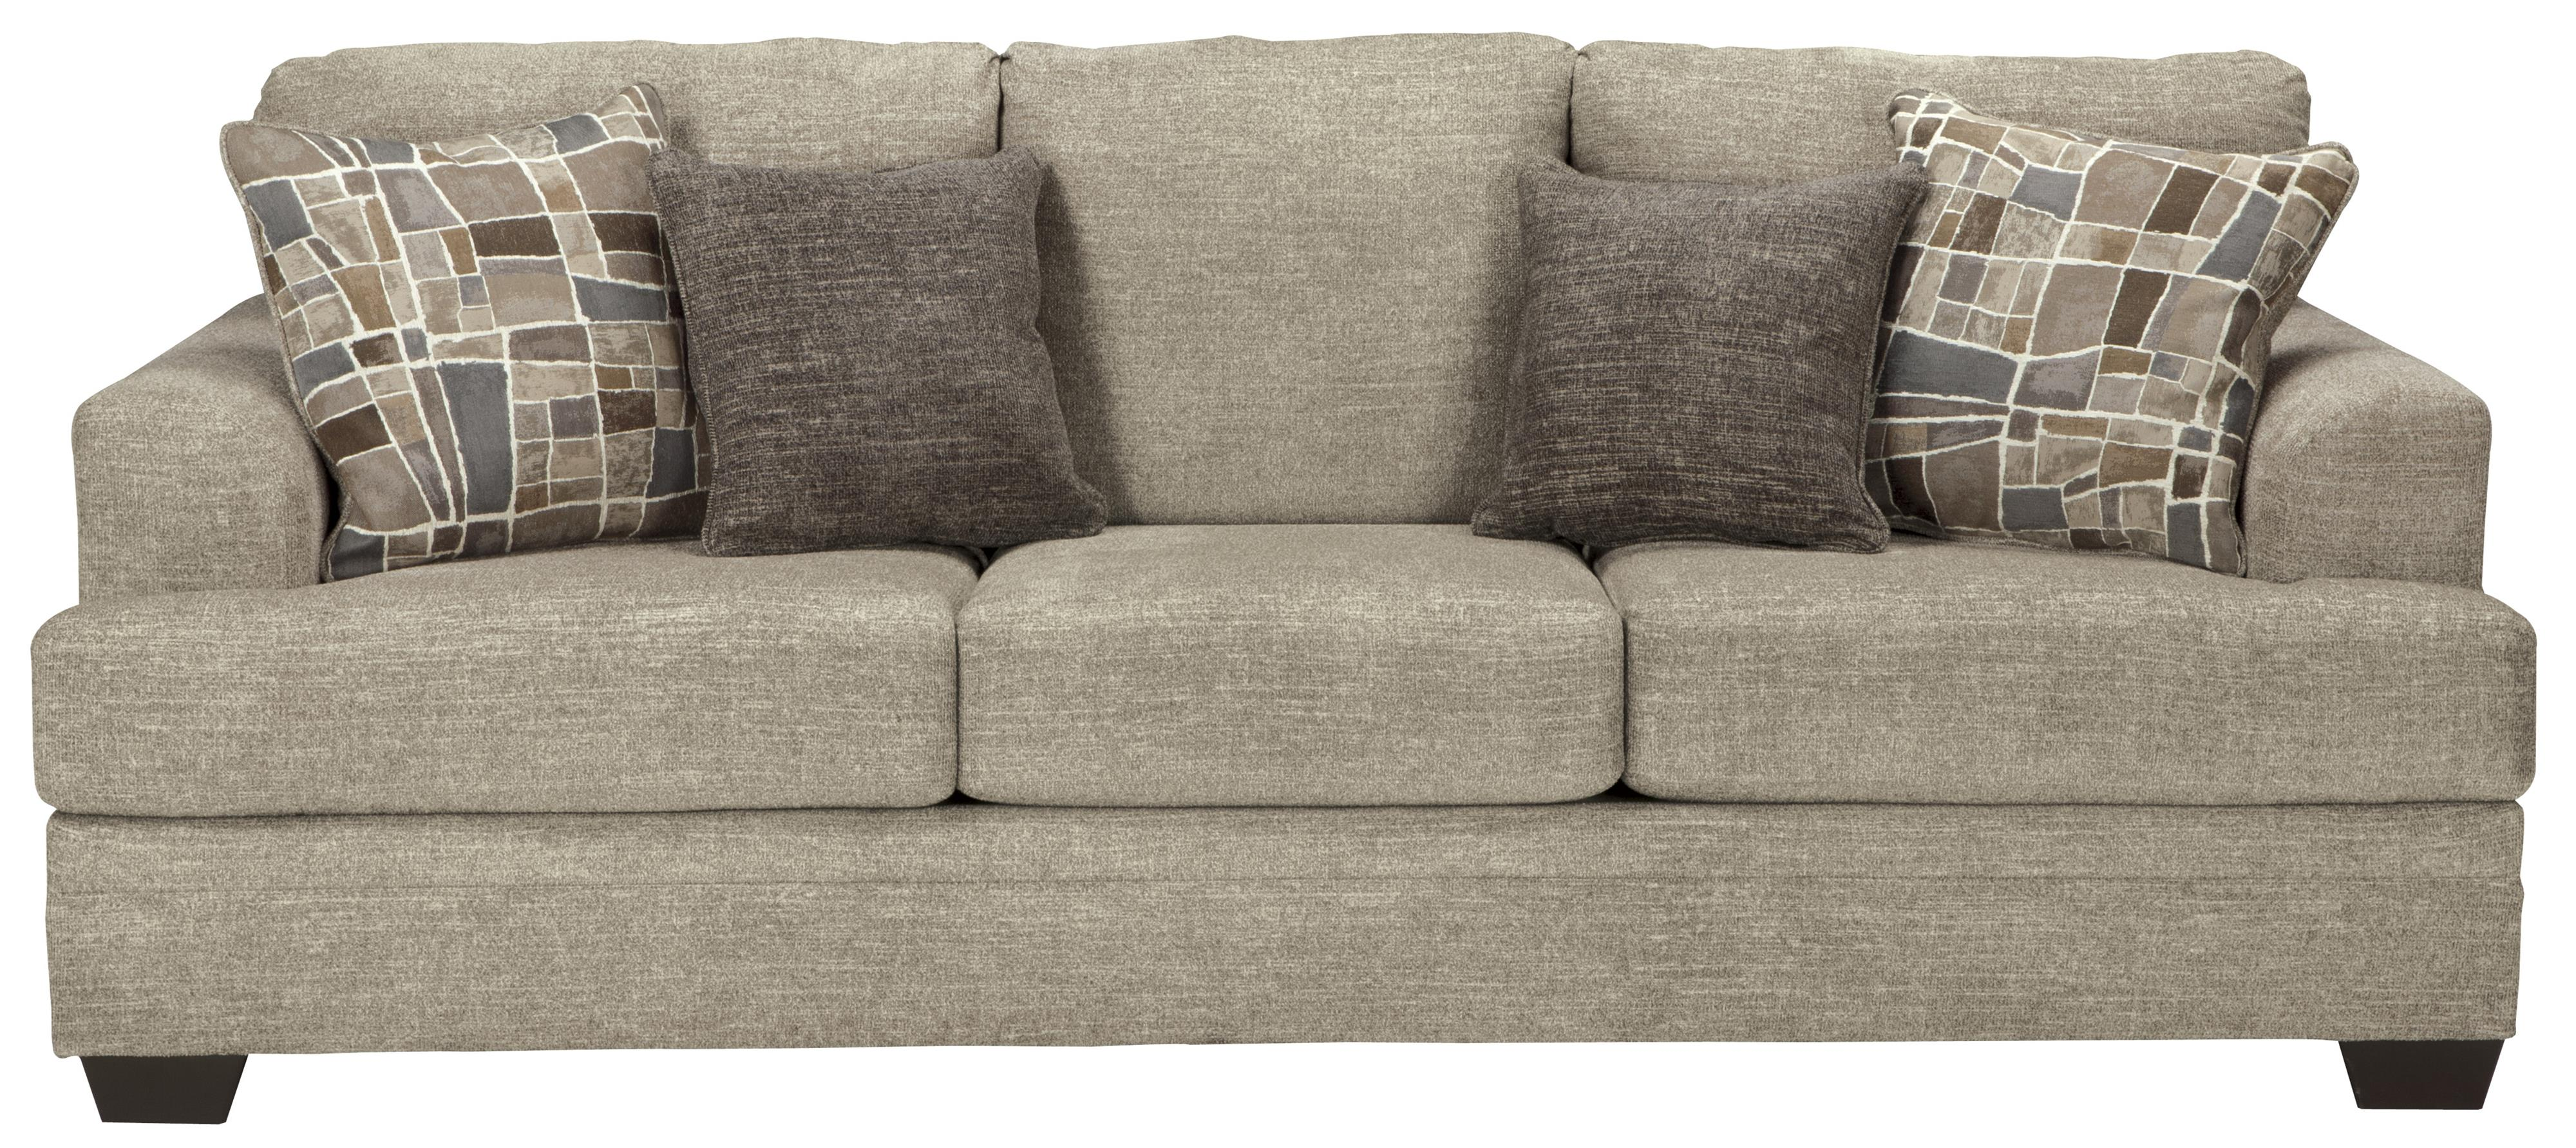 Benchcraft Barrish Contemporary Sofa With Flared Arms Wayside Furniture Sofa